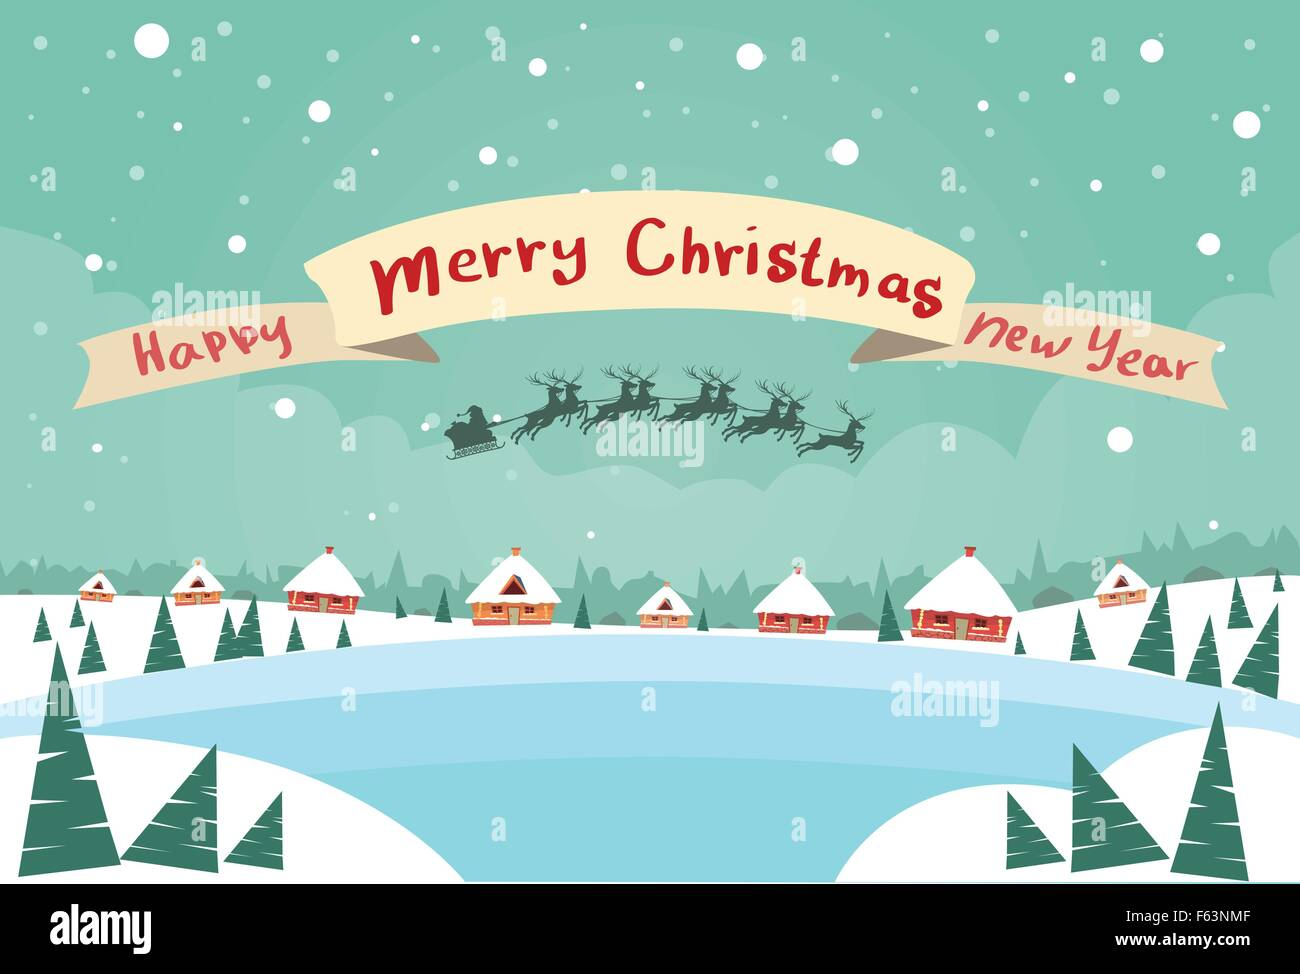 merry christmas and happy new year banner santa claus sleigh reindeer